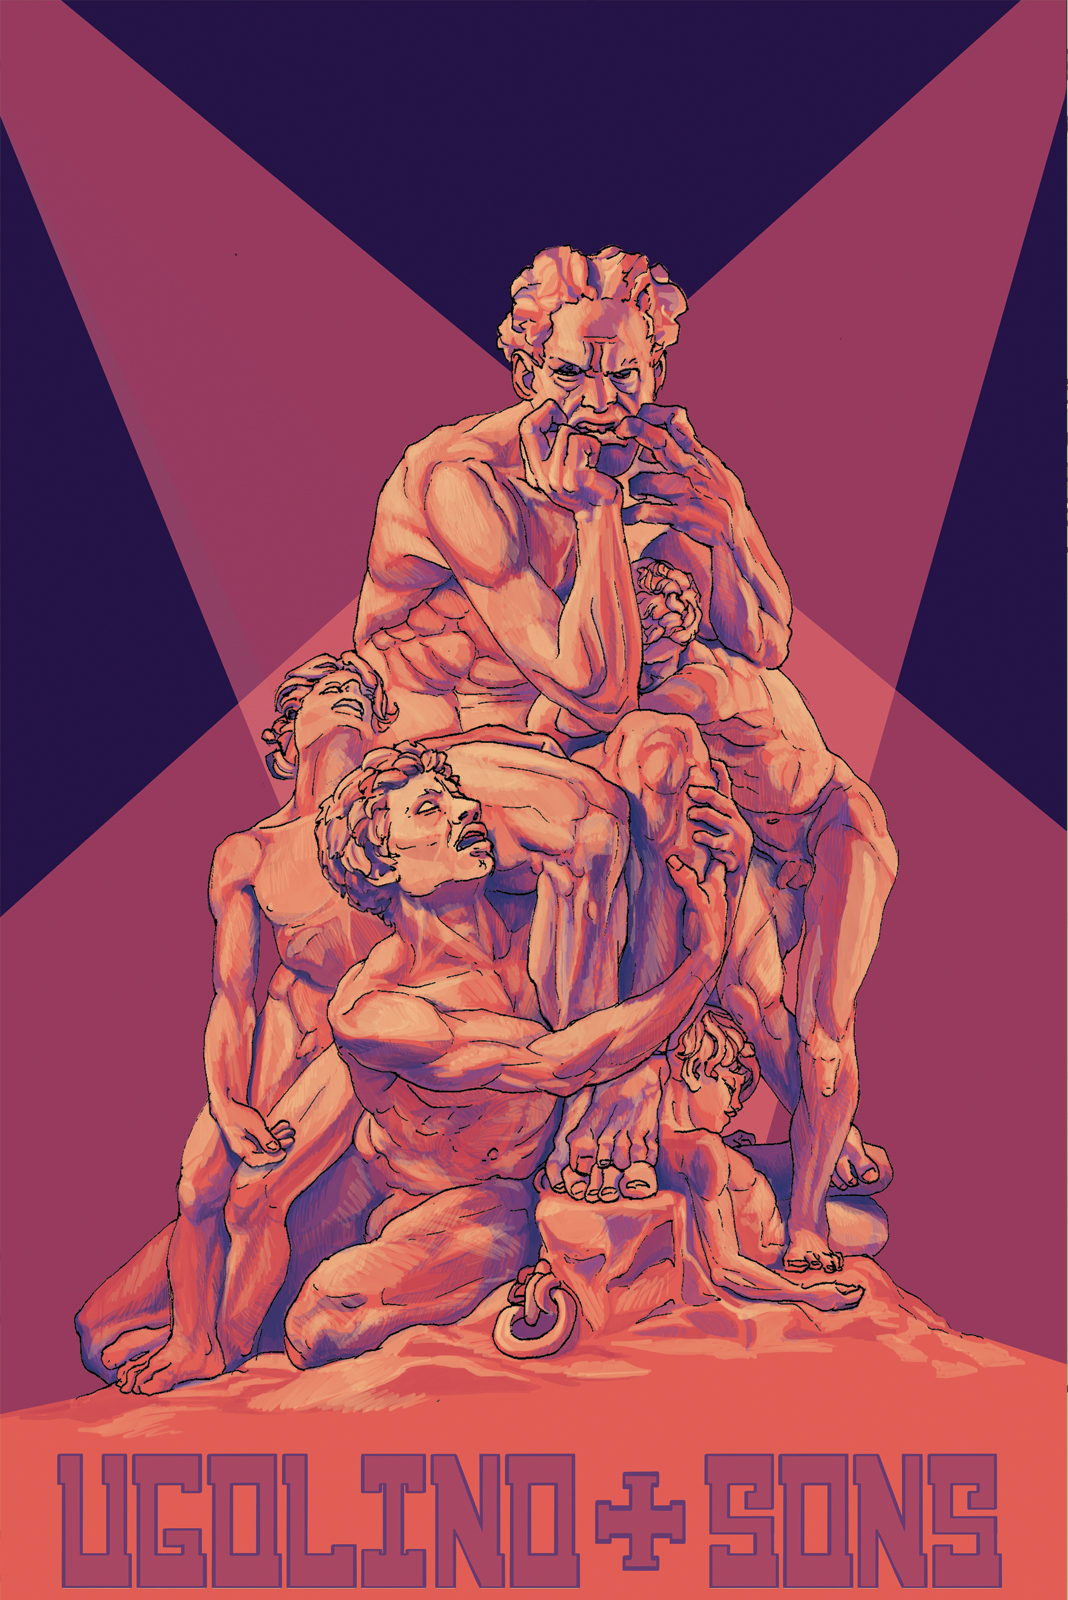 Artist depiction of Carpeaux's Ugolino and His Sons. Digital drawing of the statue with an original typeface for the title.